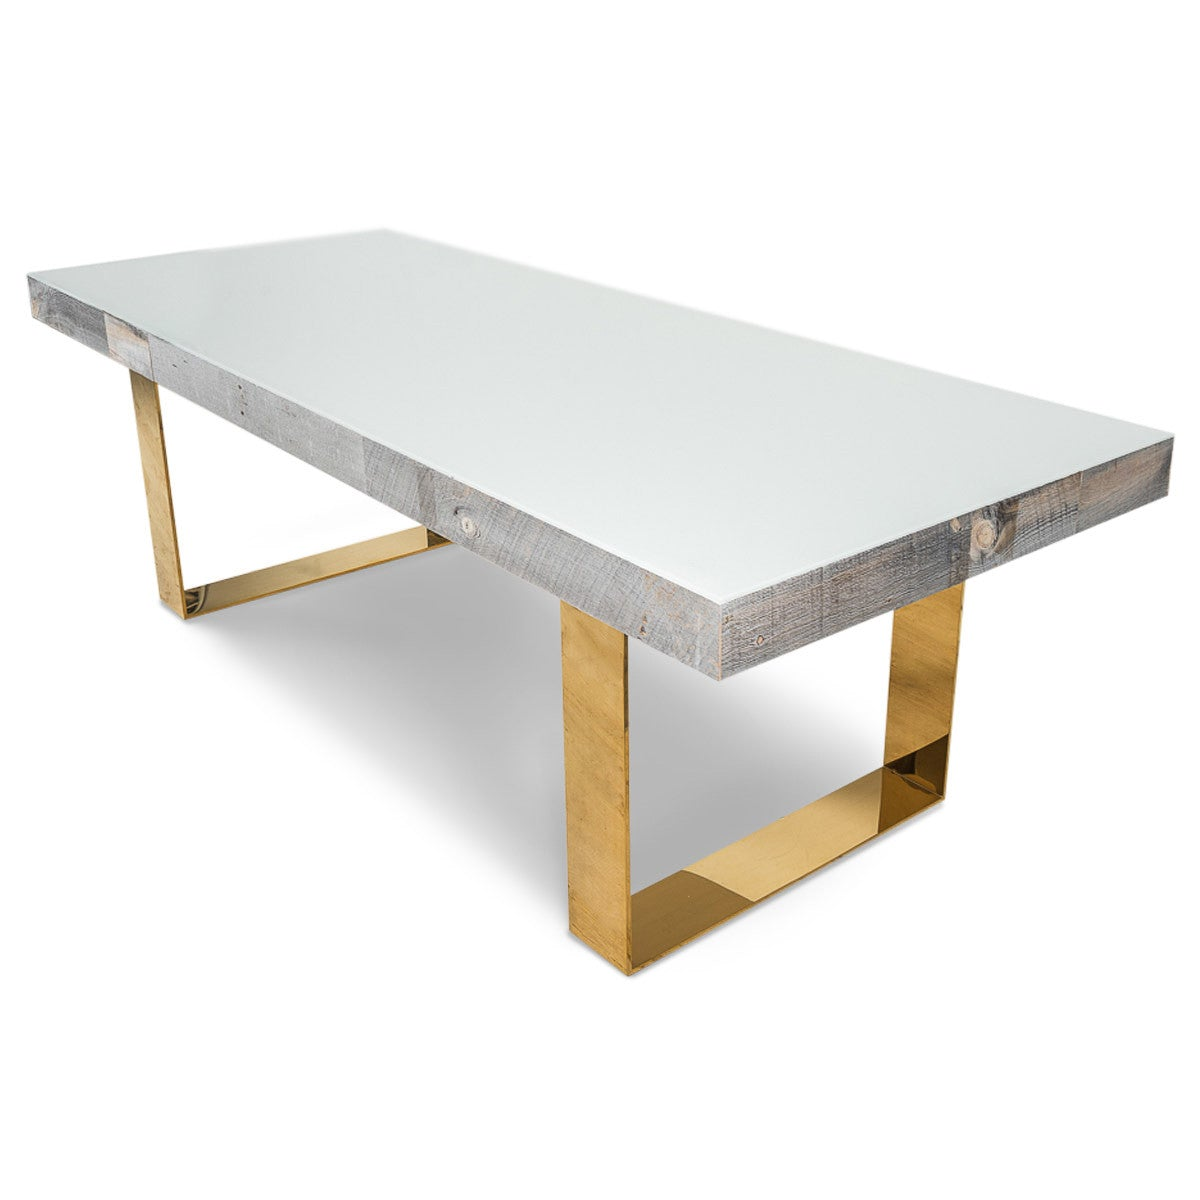 Incredible Cody Dining Table Brass Dining Table With Wood Top Modshop Interior Design Ideas Tzicisoteloinfo